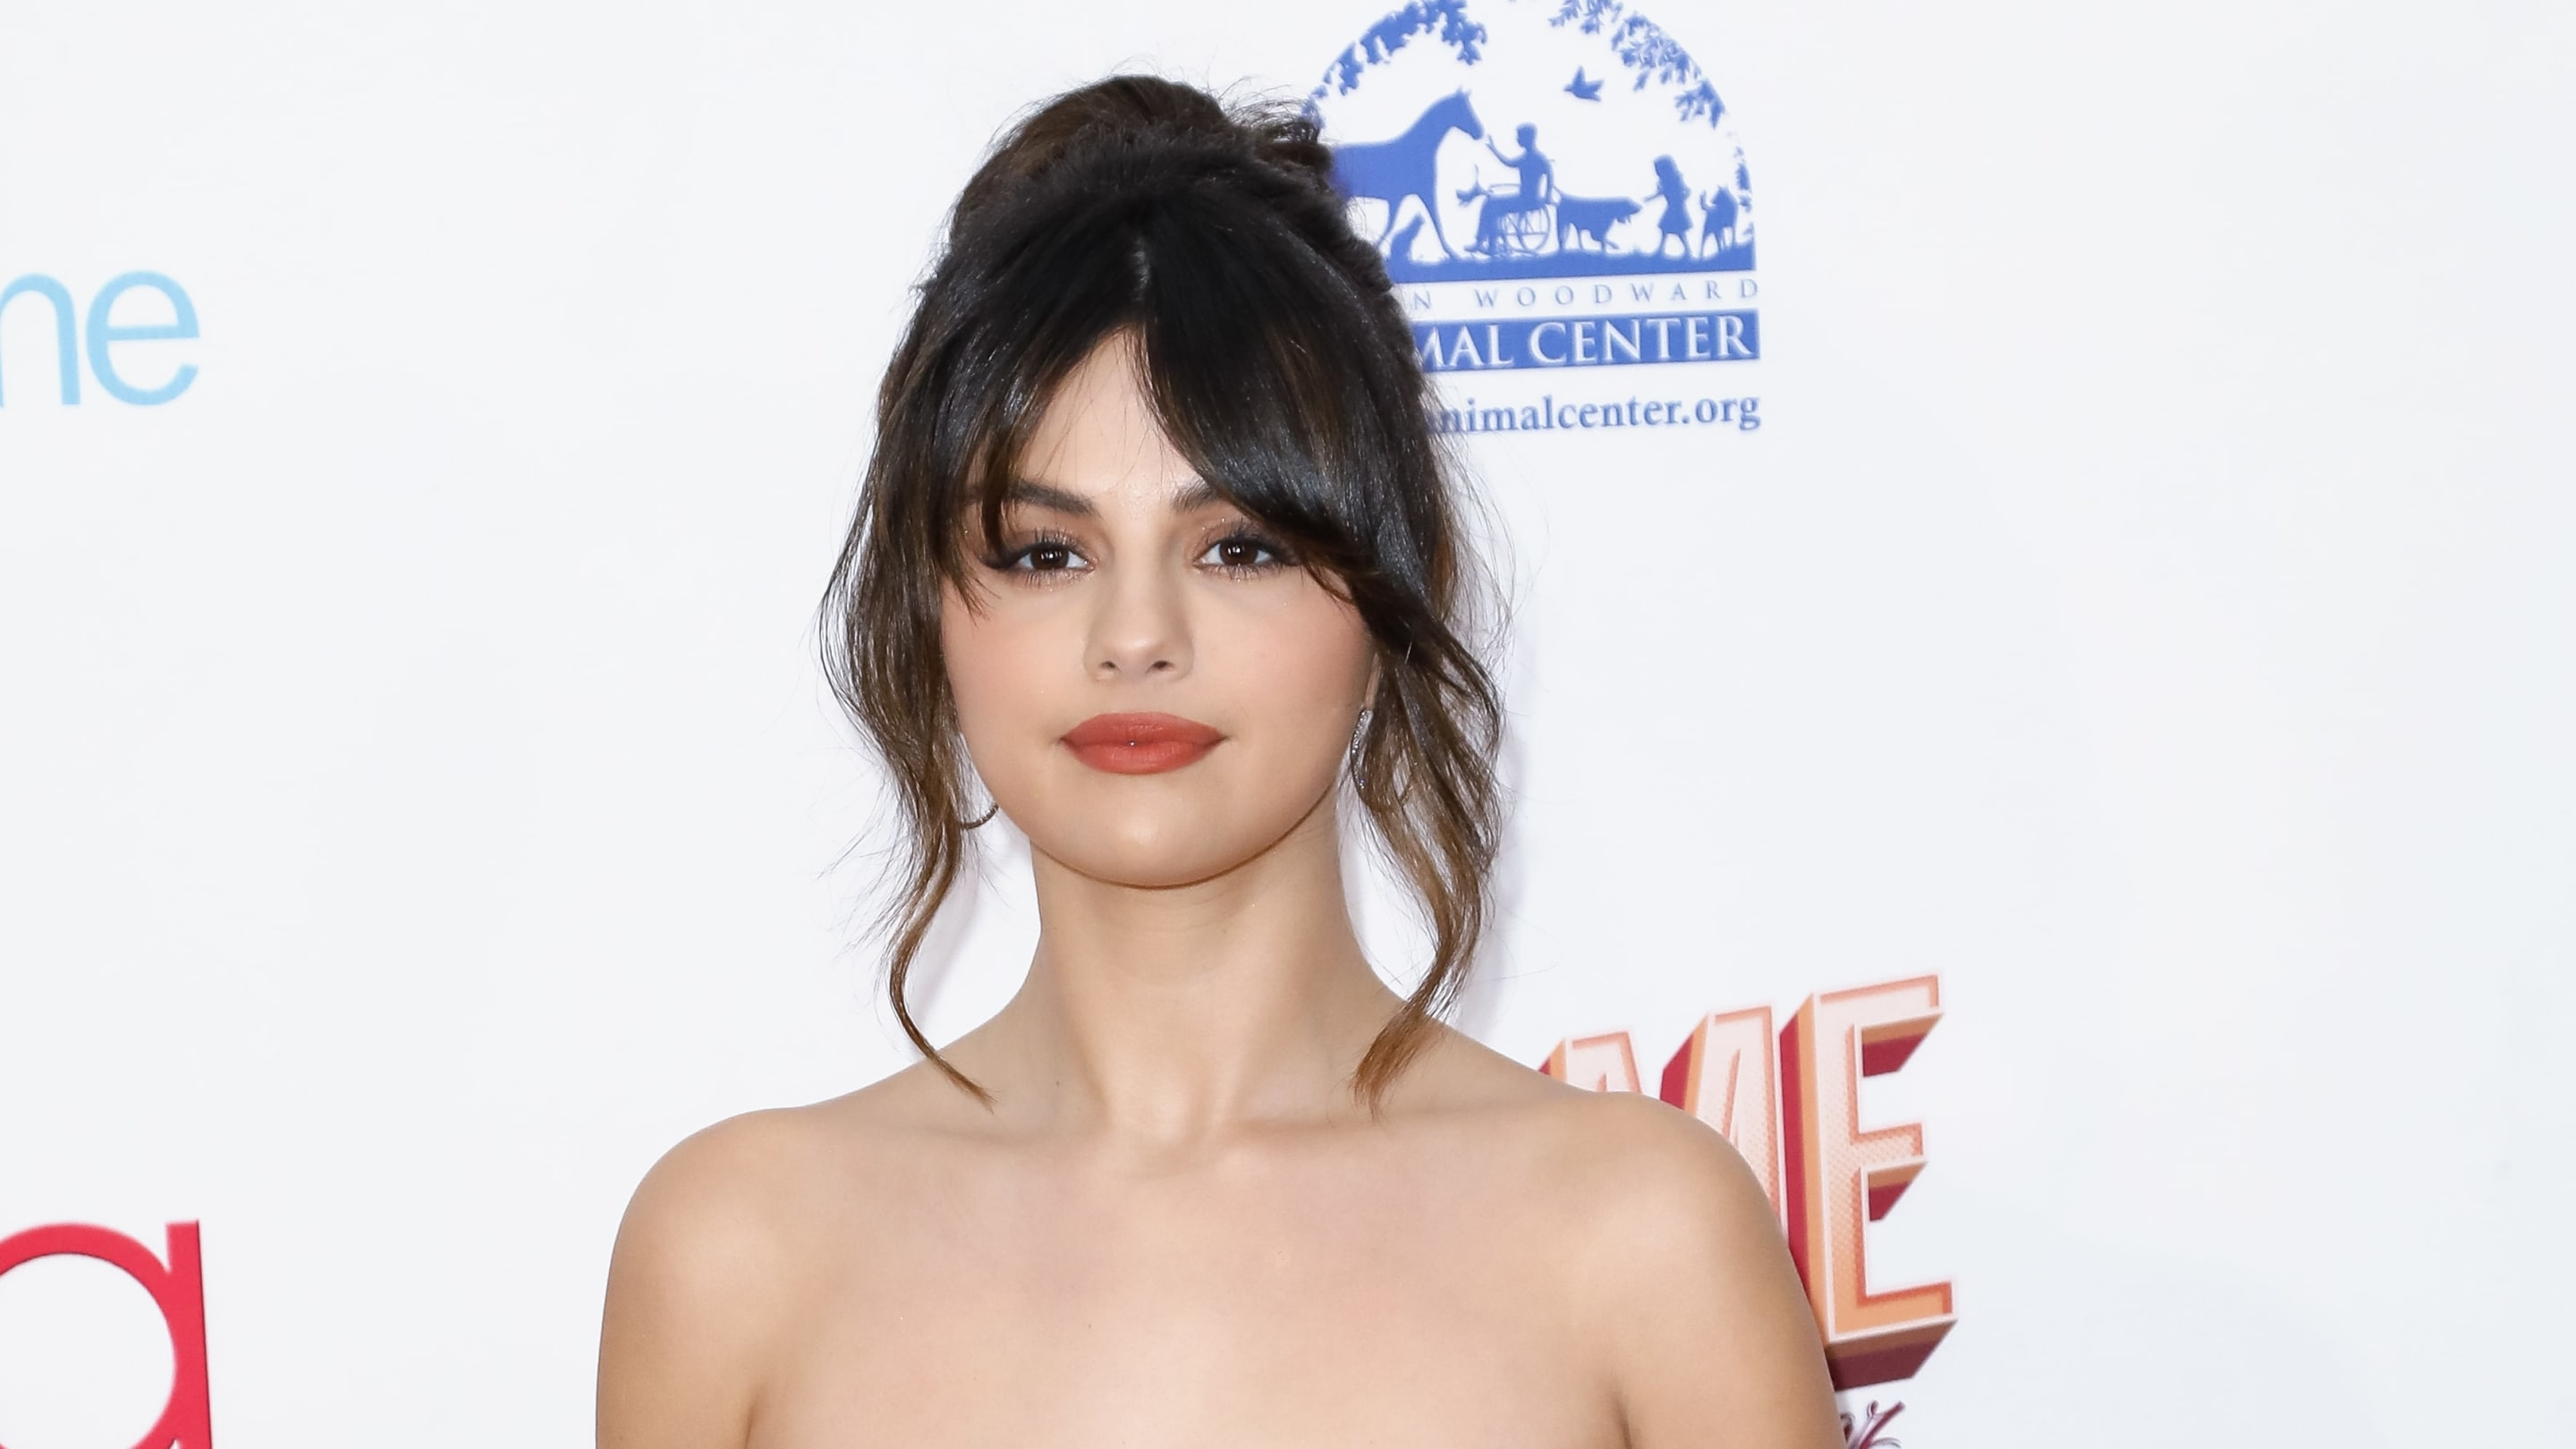 Selena Gomez Starring in New Hulu Series 'Only Murders In the Building' With Steve Martin and Martin Short